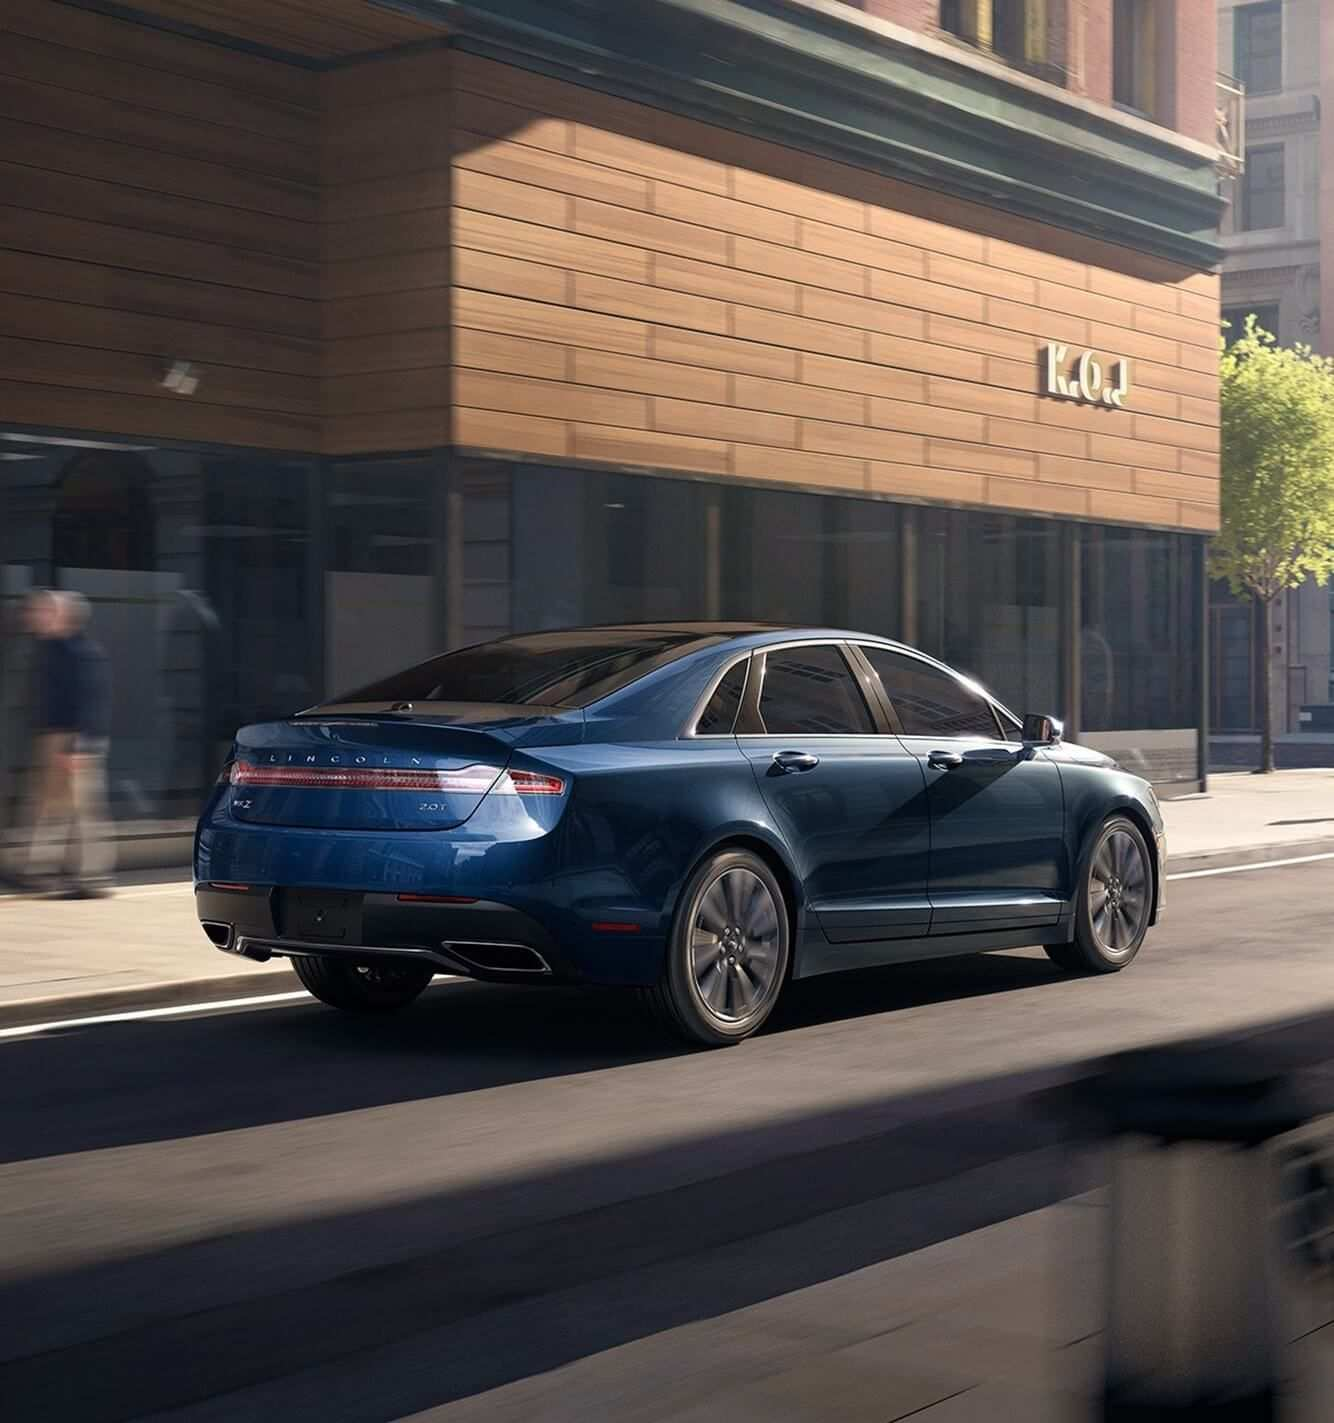 51 All New 2020 Lincoln MKZ Exterior And Interior